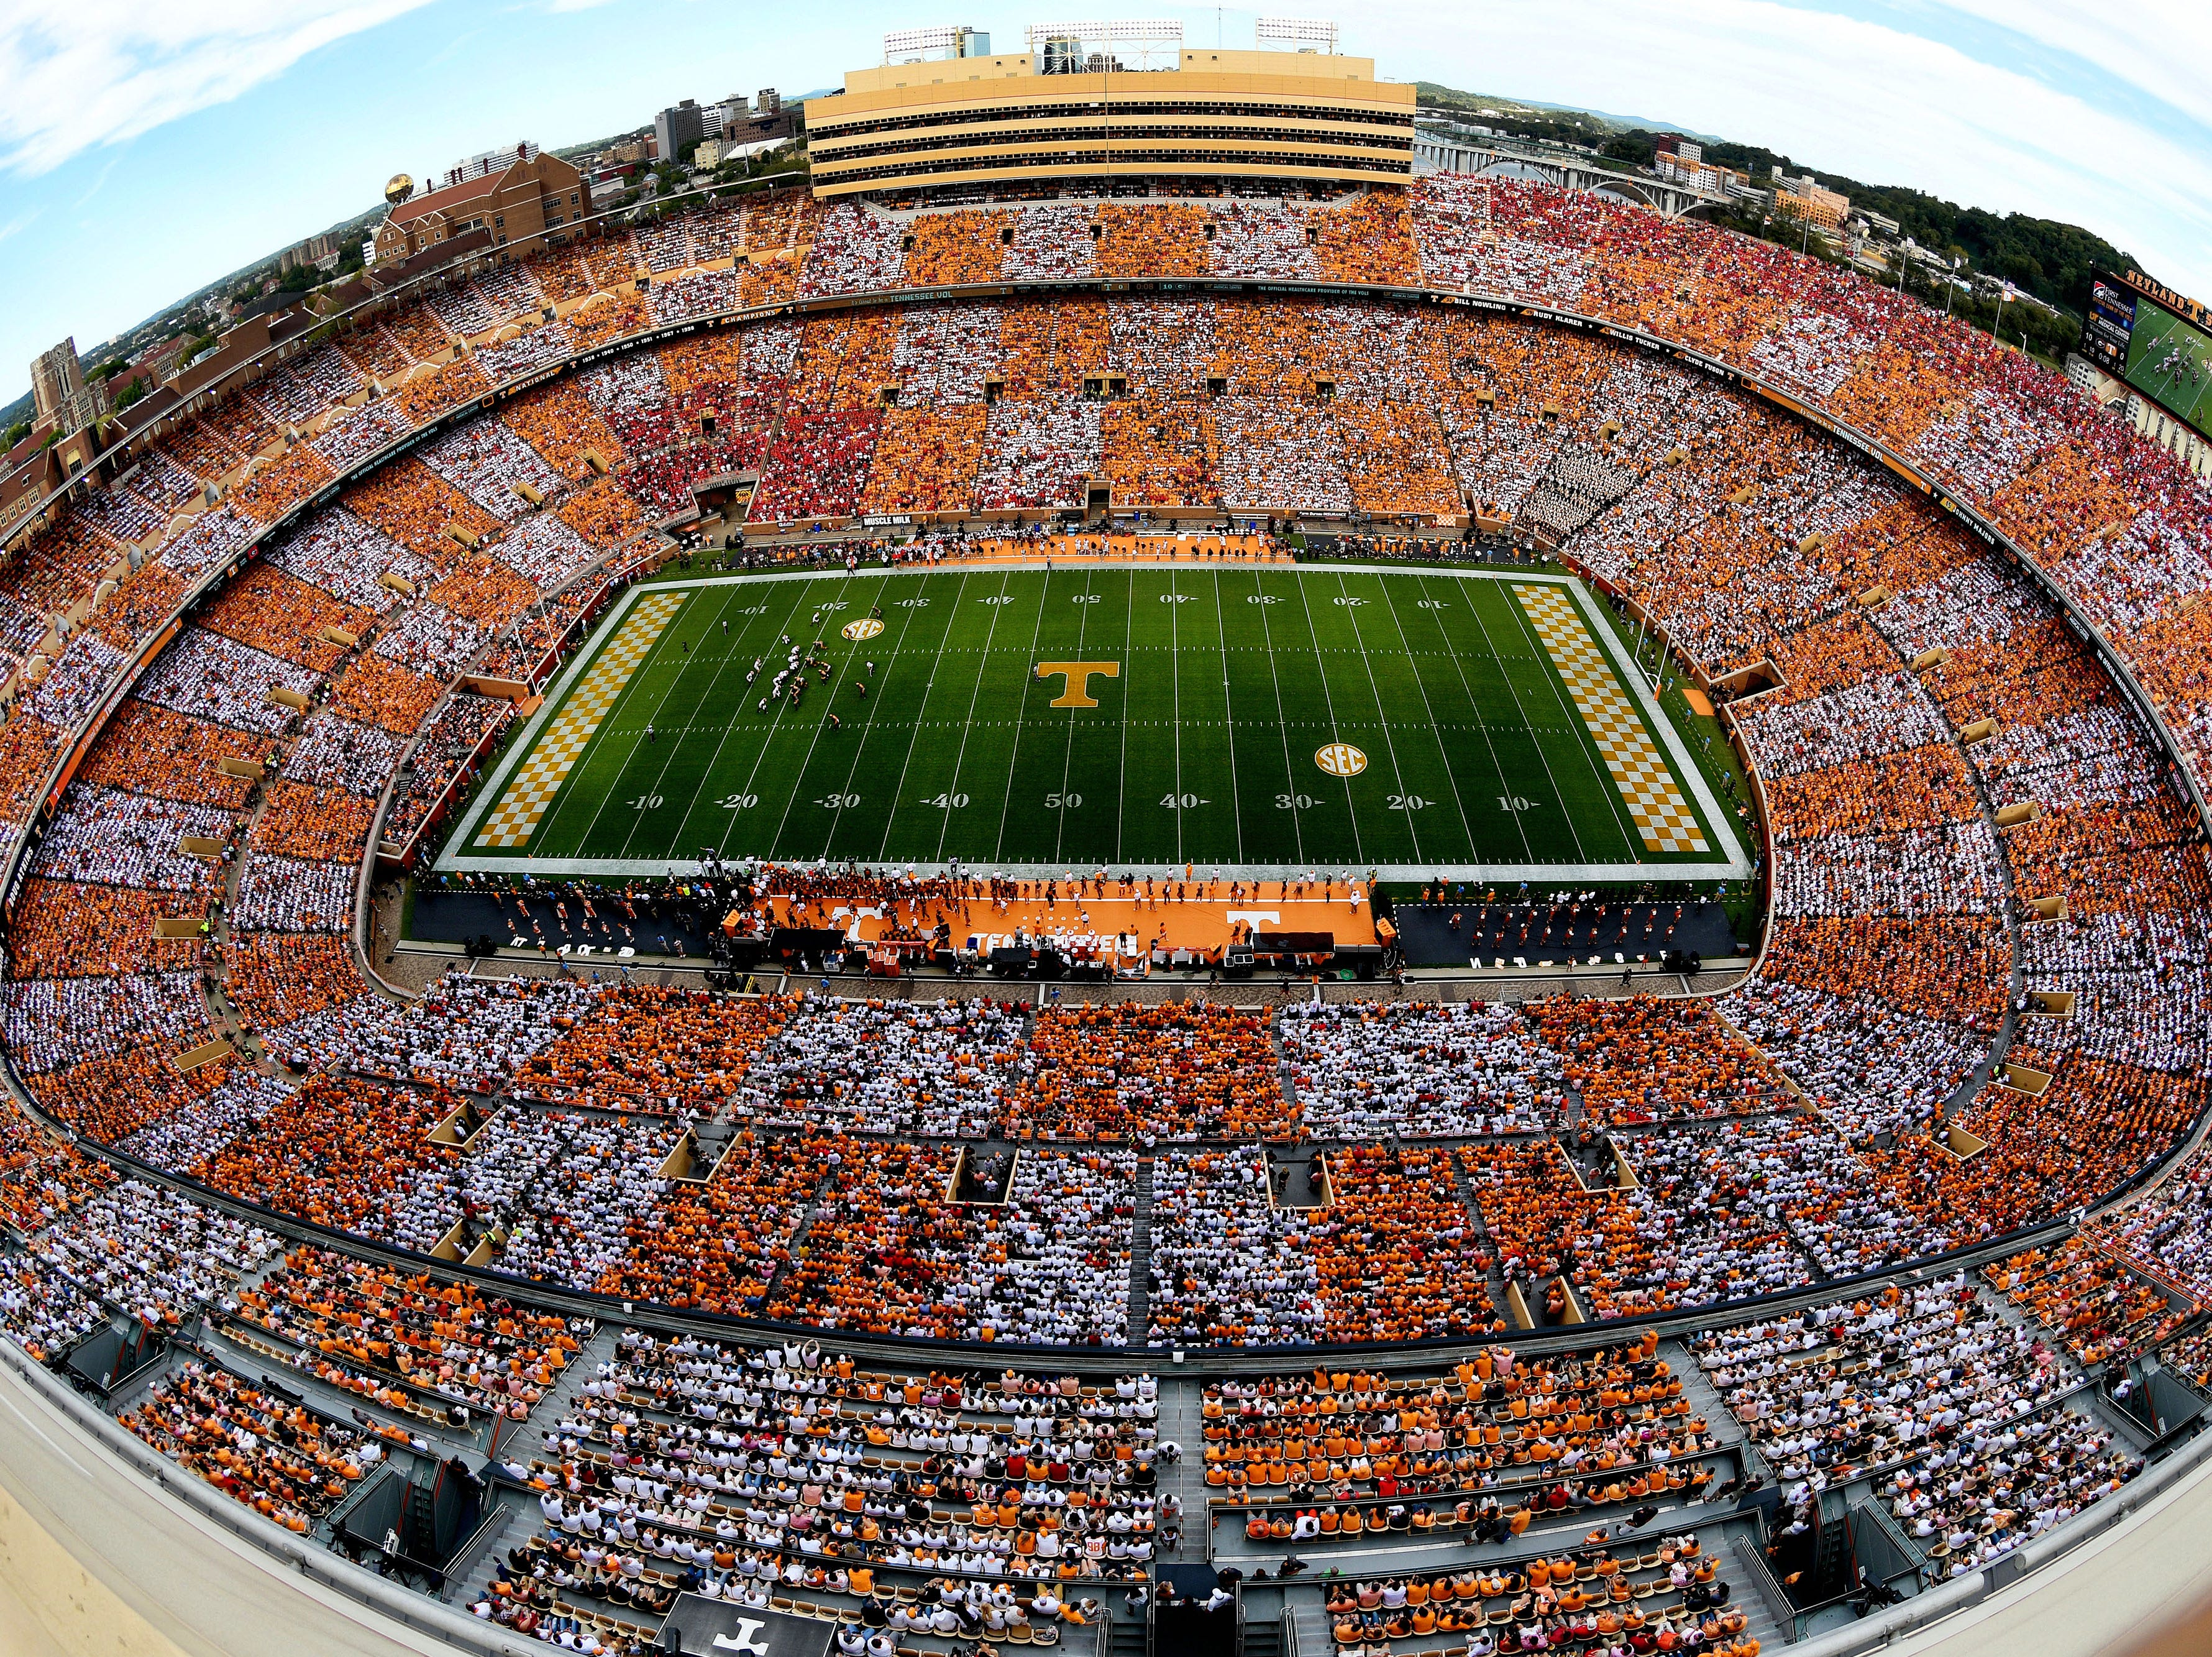 A checkered pattern colors Neyland Stadium during the Tennessee Volunteers vs. Georgia Bulldogs game at Neyland Stadium in Knoxville, Tennessee on Saturday, September 30, 2017.